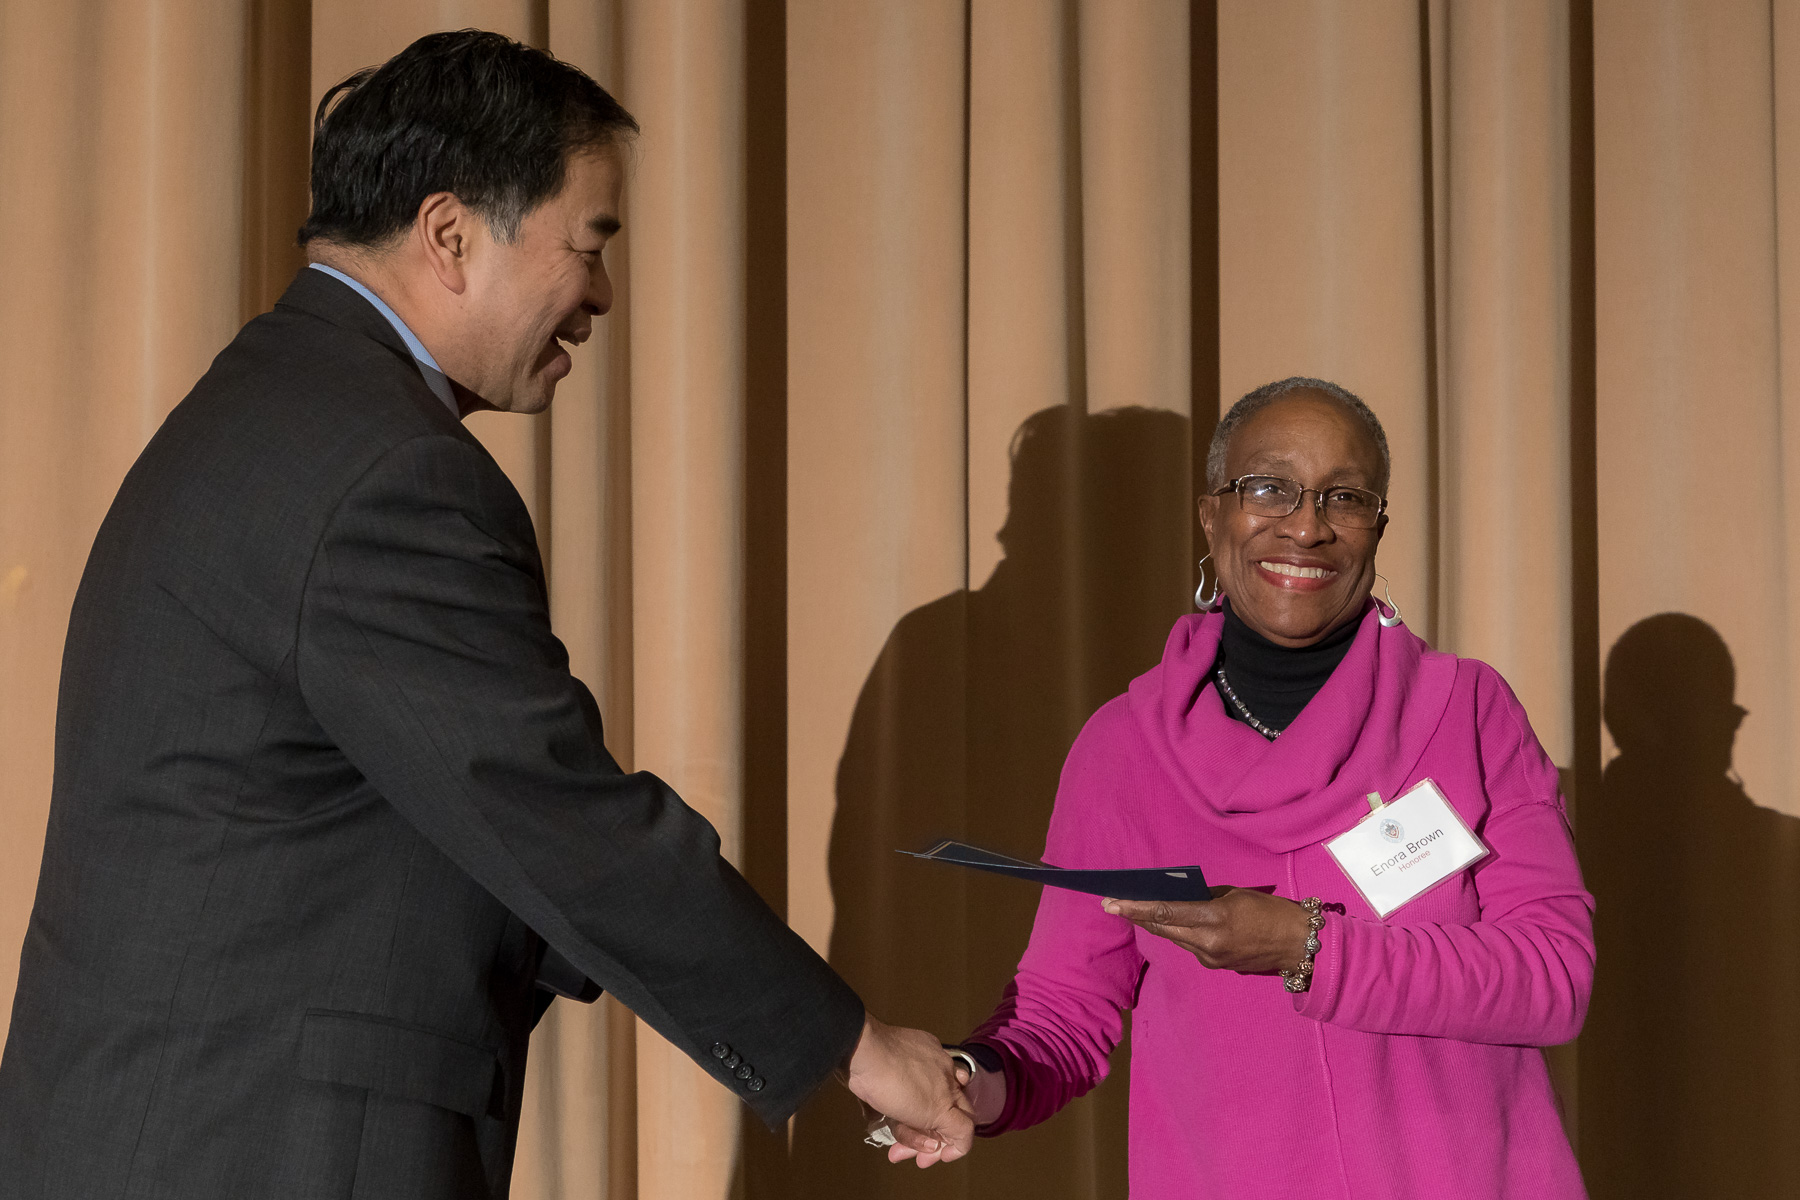 Enora Brown, right, with A. Gabriel Esteban, Ph.D., president, as faculty and staff members are inducted into DePaul University's 25 Year Club, Tuesday, Nov. 13, 2018, at the Lincoln Park Student Center. Employees celebrating their 25th work anniversary were honored at the luncheon with their colleagues and will have their names added to plaques located on the Loop and Lincoln Park Campuses. (DePaul University/Jeff Carrion)